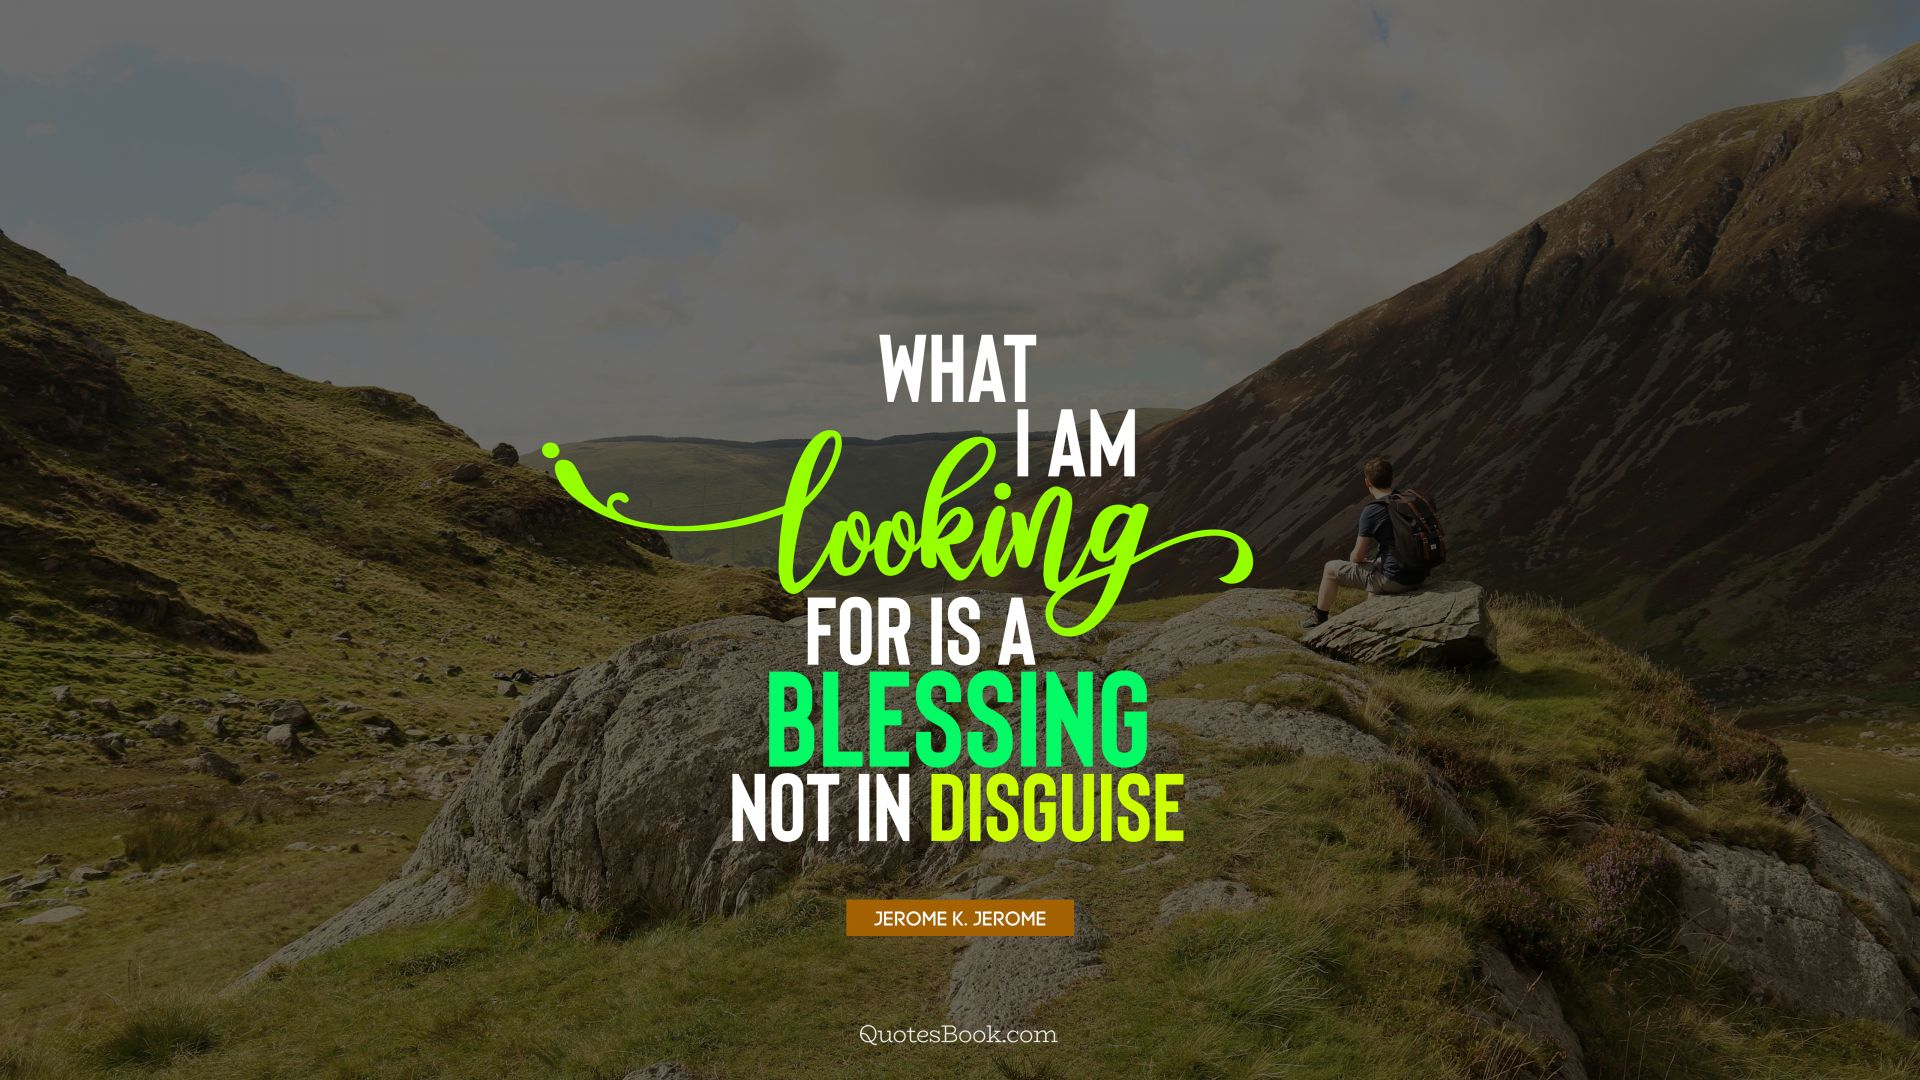 What I am looking for is a blessing not in disguise. - Quote by Jerome K. Jerome